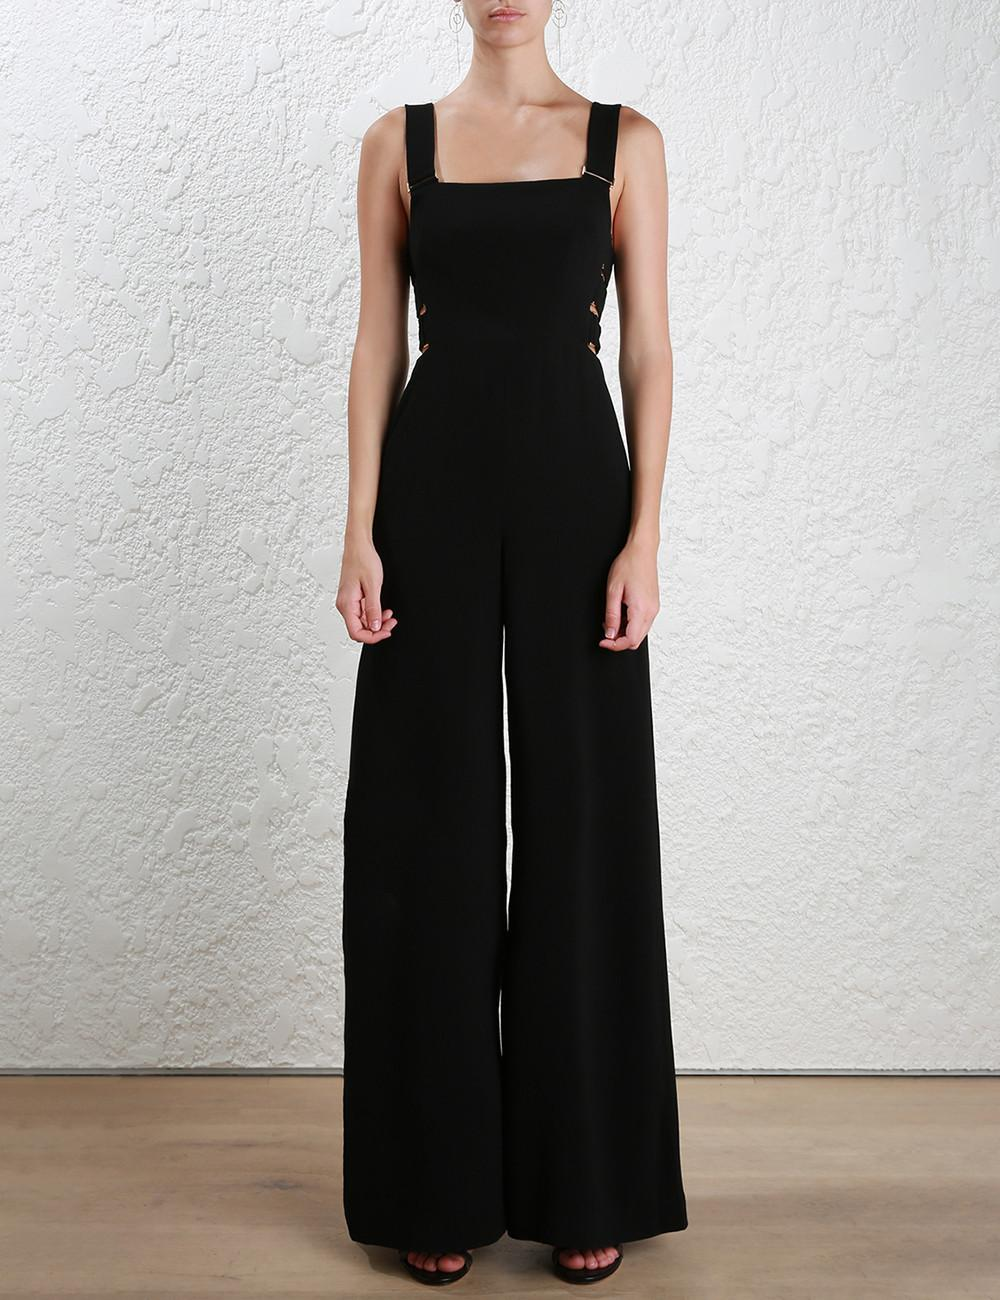 PADEGAO Fashion Hollow Out Shoulder-straps Jumpsuits Wide Leg Pants 2017 Summer Elegant Slim Backless Women High Quality Clothes